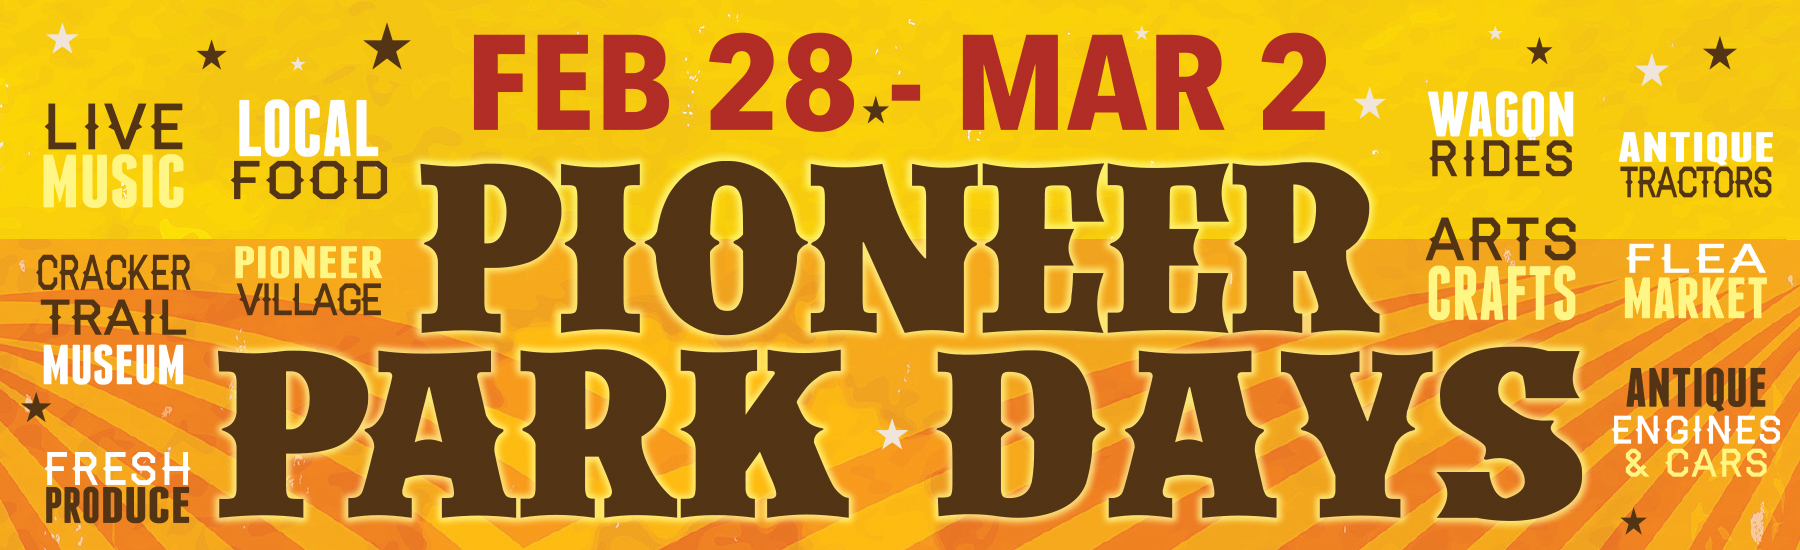 Pioneer Park Days, FEB 28 - MAR 2, Save The Date